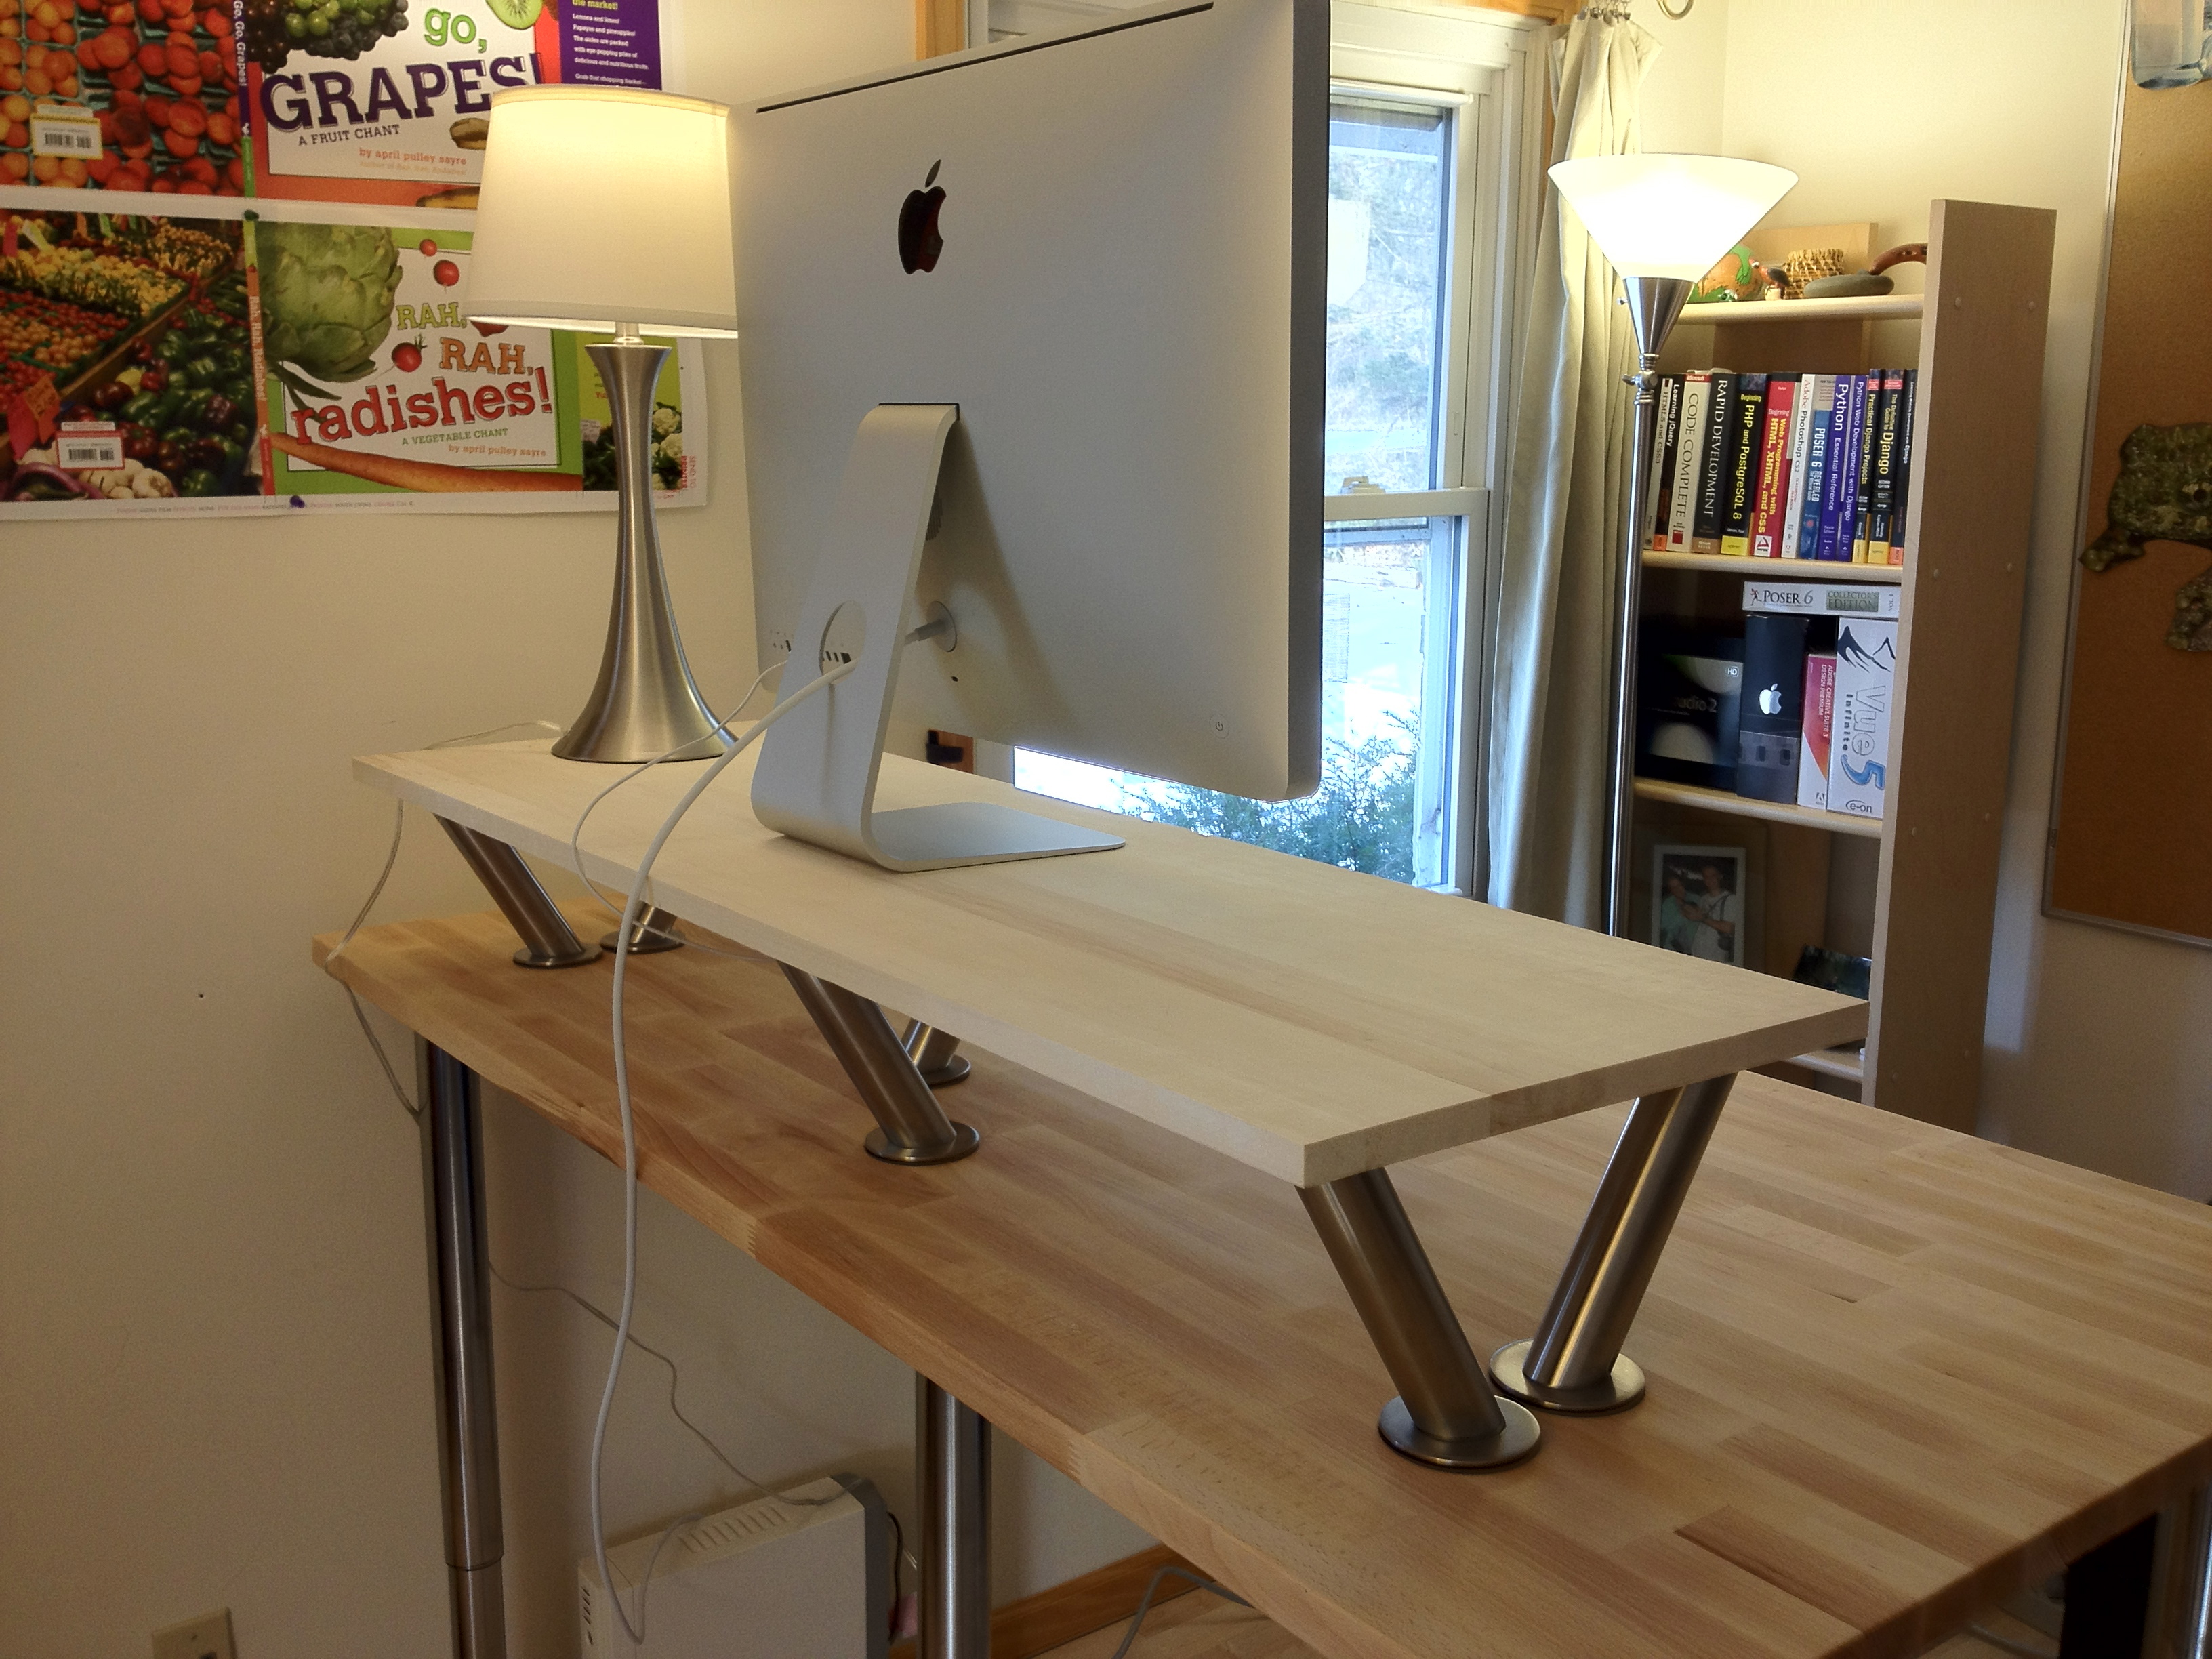 Working with ikea stand up desk face your job powerfully homesfeed - Table bureau ikea ...